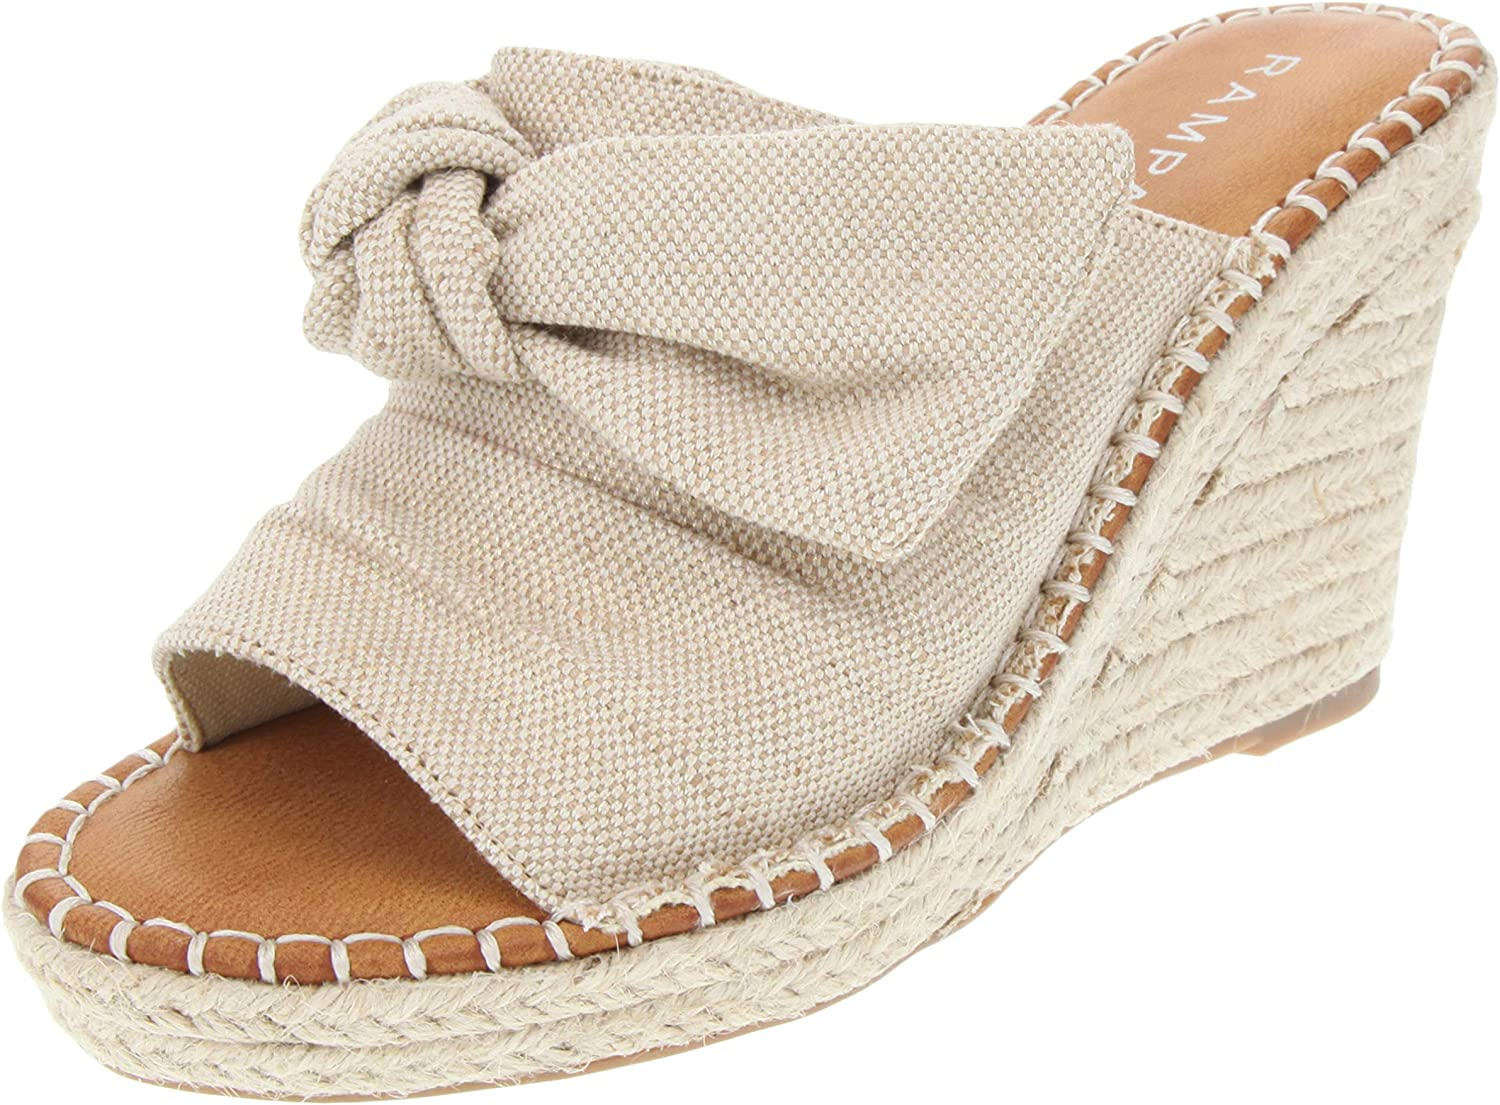 Rampage Women's Hannah Espadrille Wedge Slide Sandal with Knotty Bow Detail